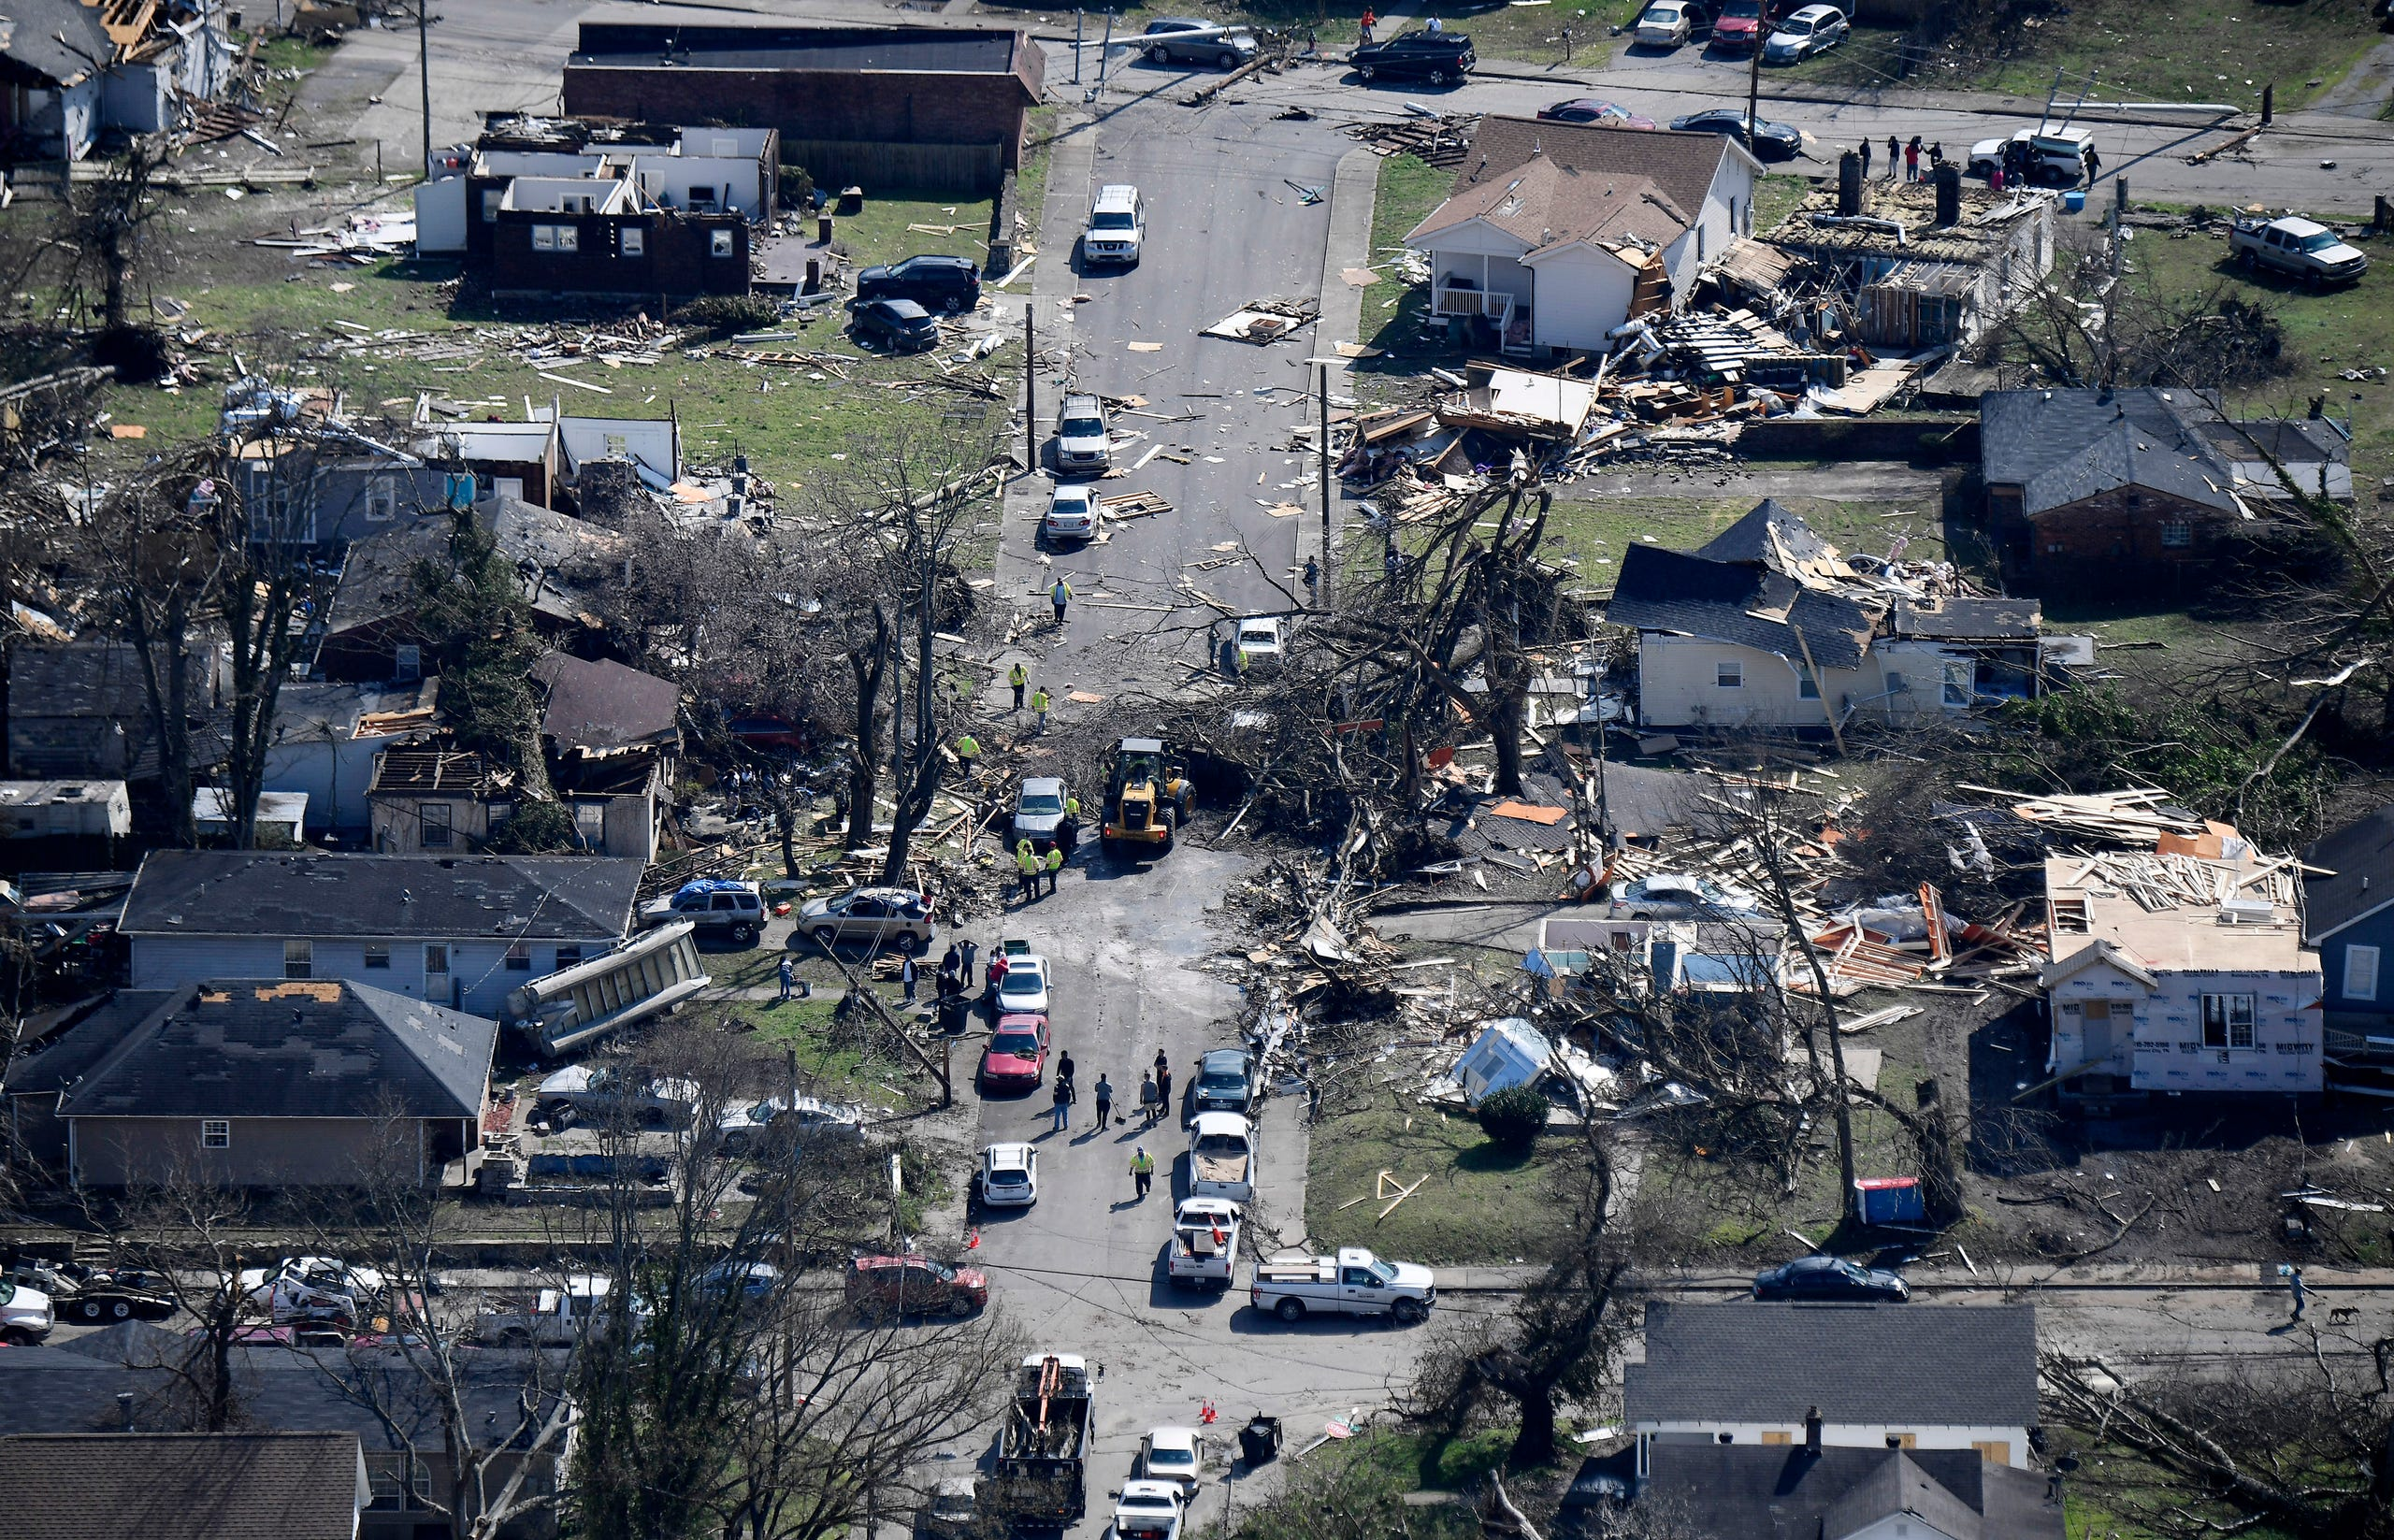 Nashville, Tennessee Tornado Aftermath